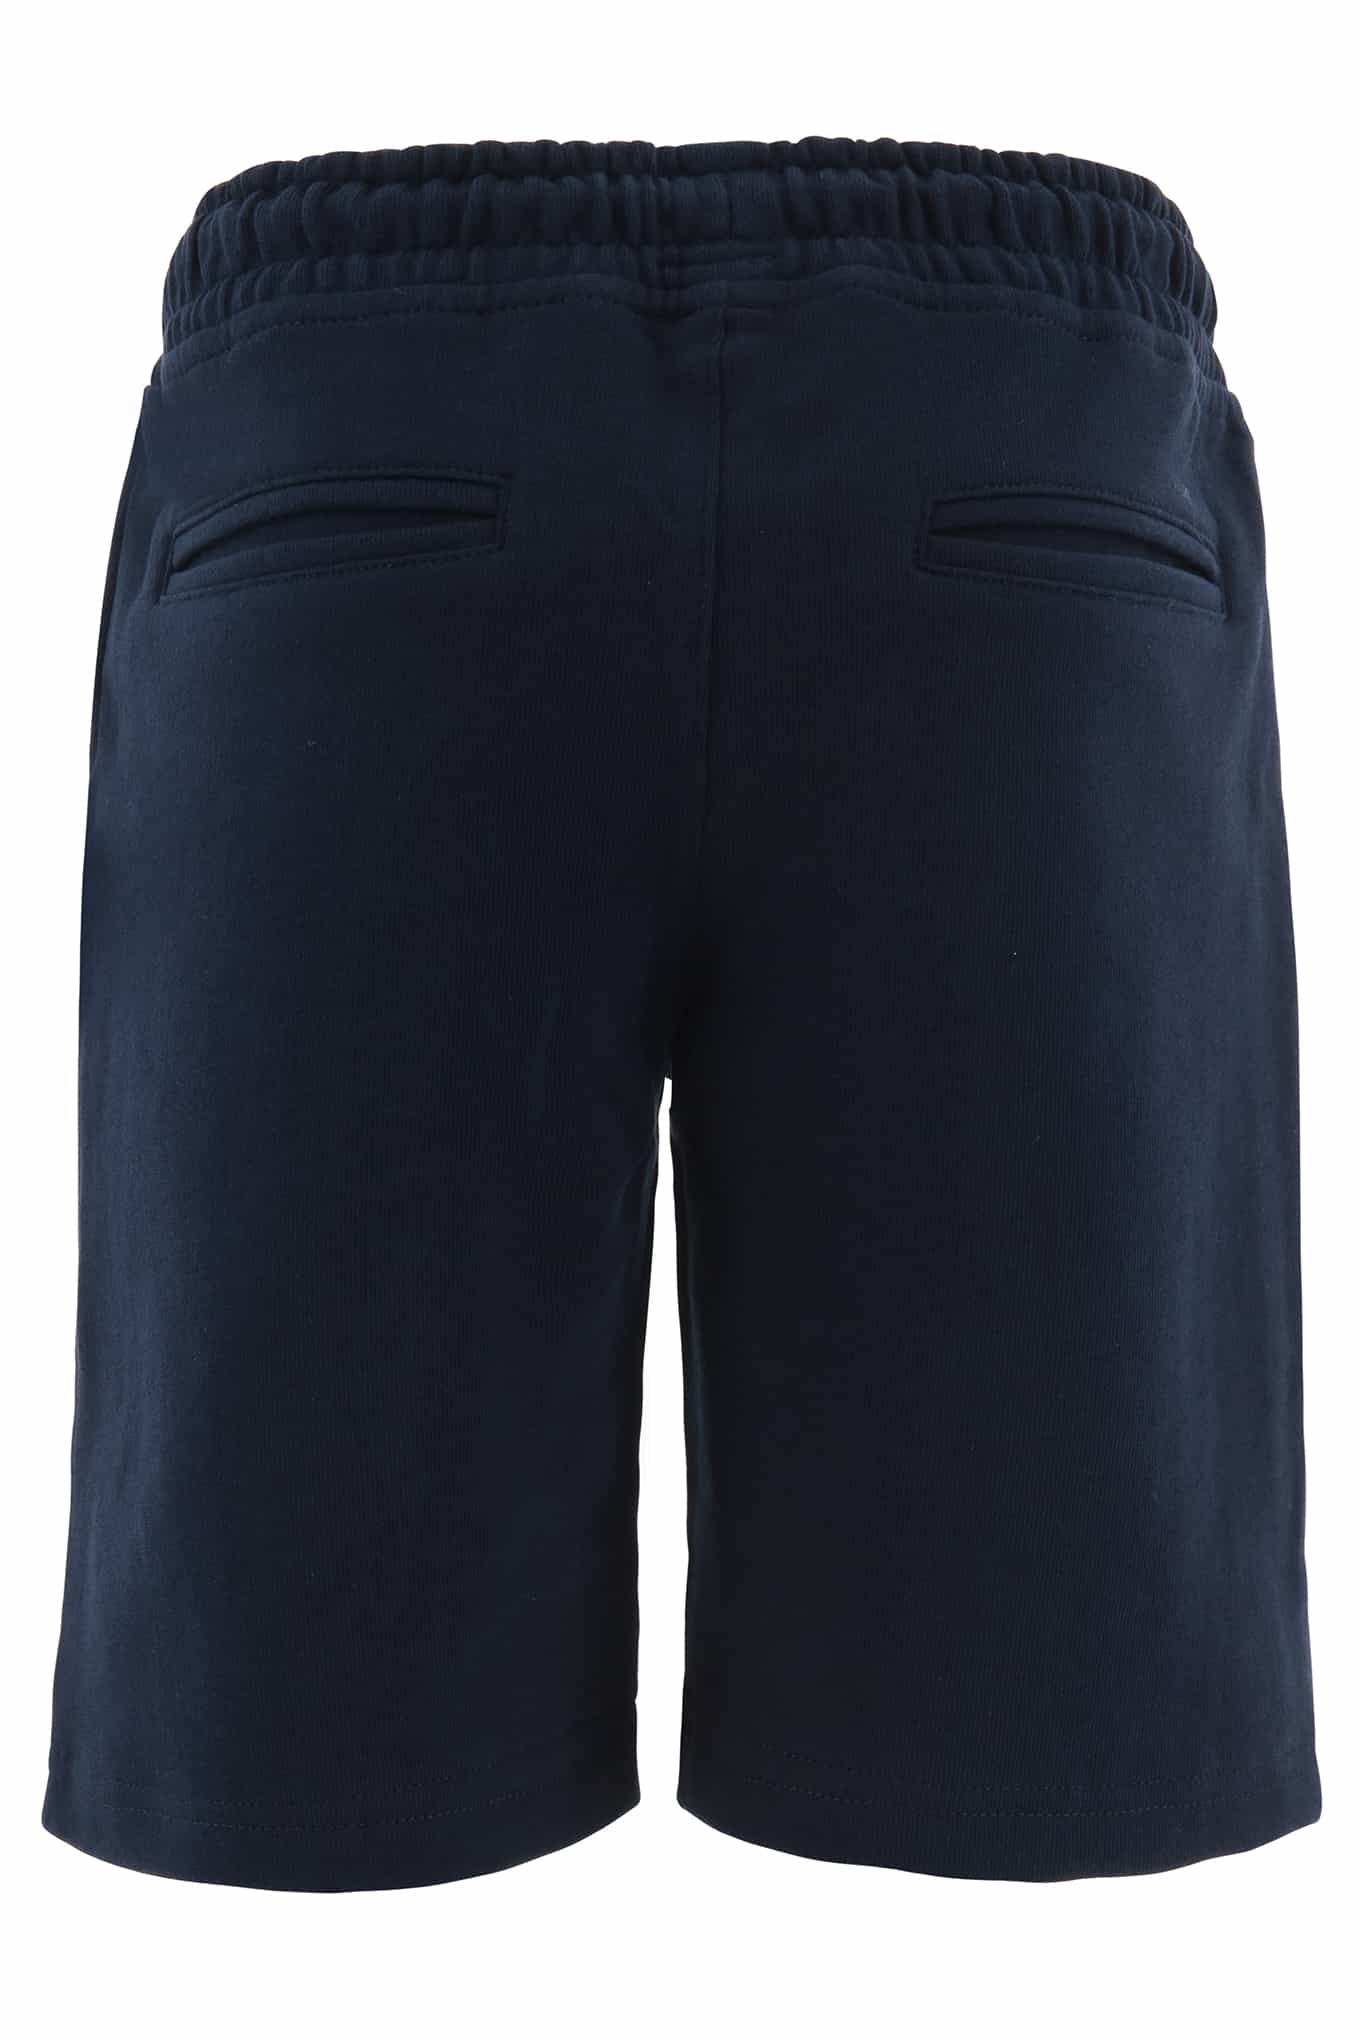 Sportswear Shorts Dark Blue Sport Boy